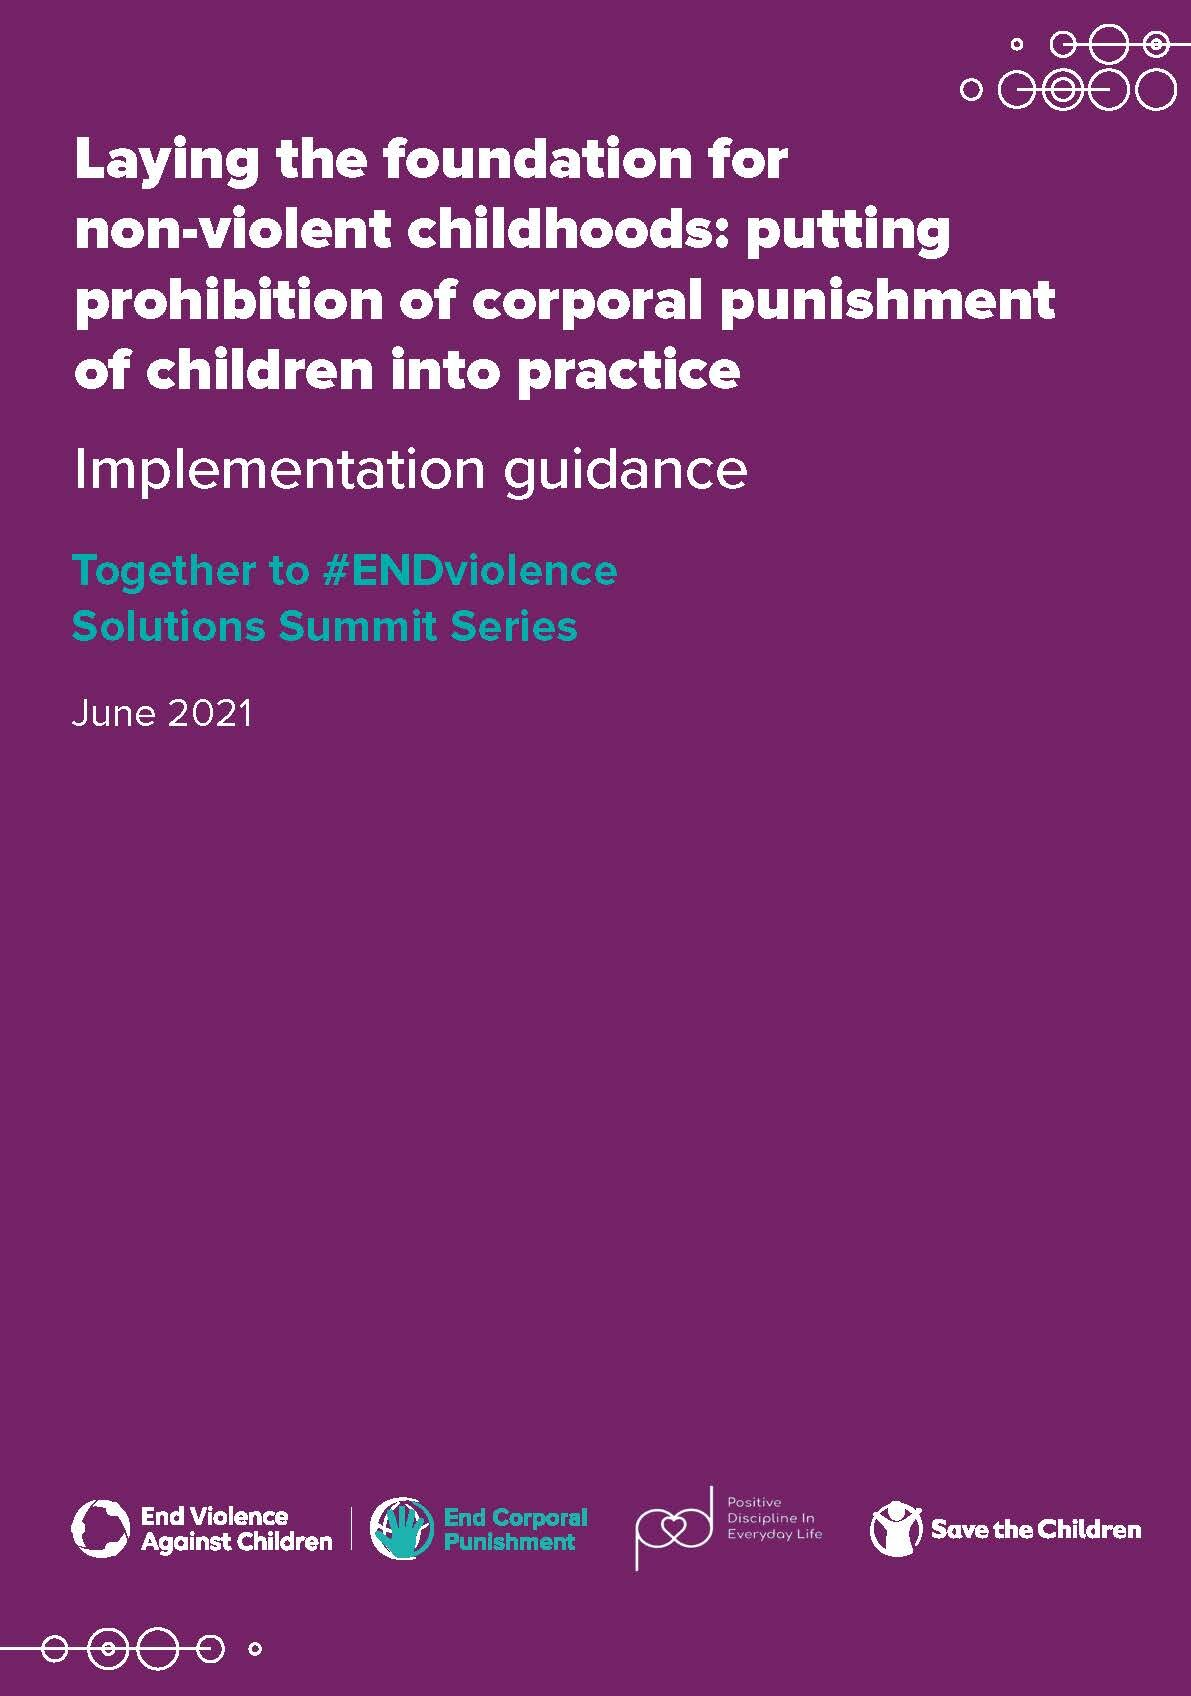 Implementation guidance cover